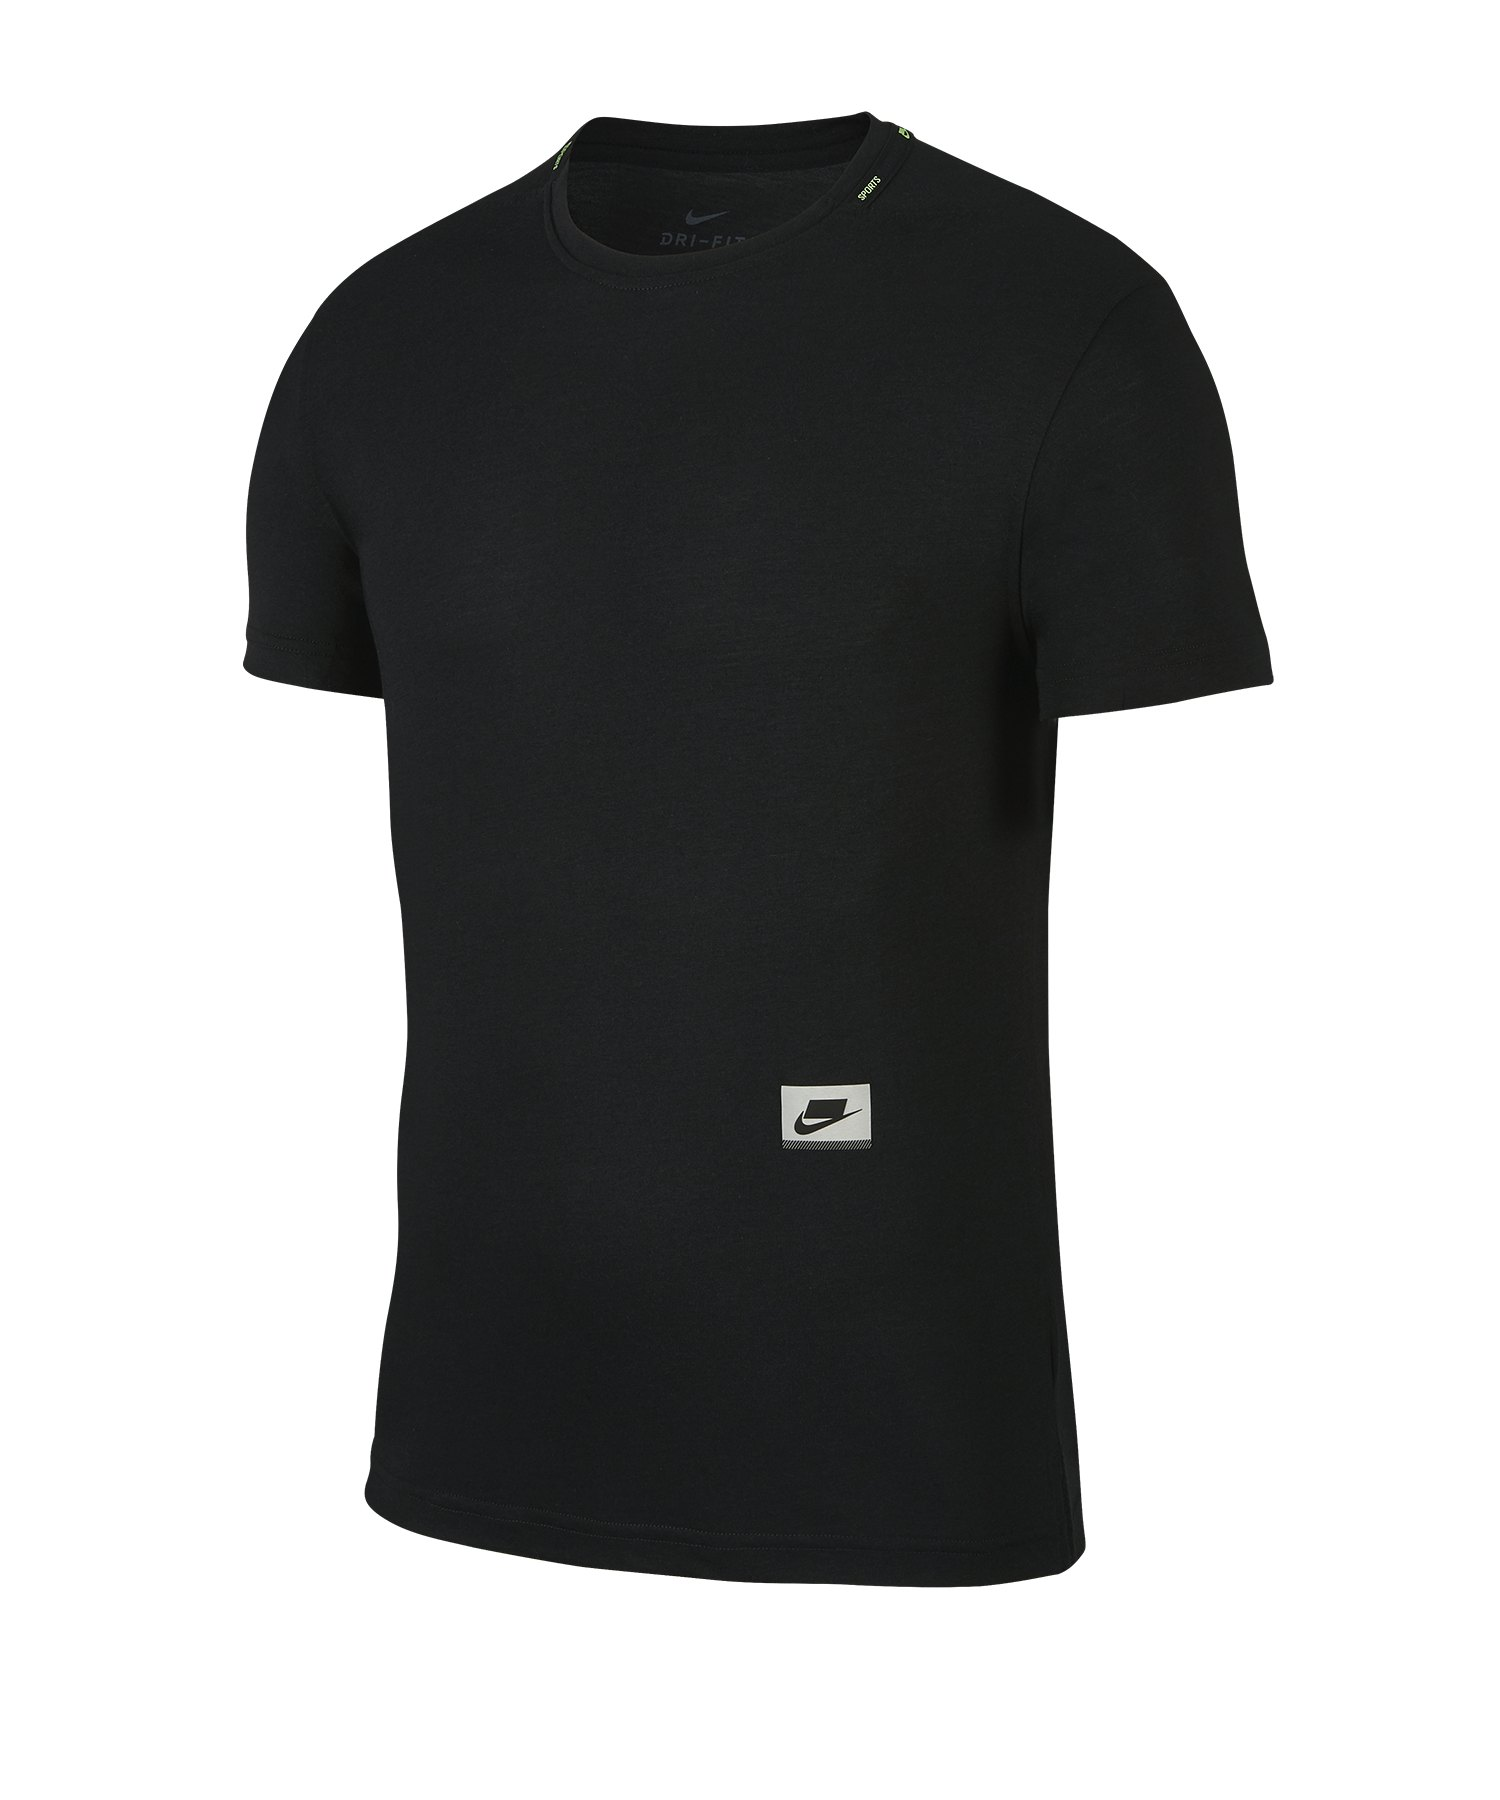 Nike Dri-FIT Training T-Shirt Running Schwarz F010 - schwarz